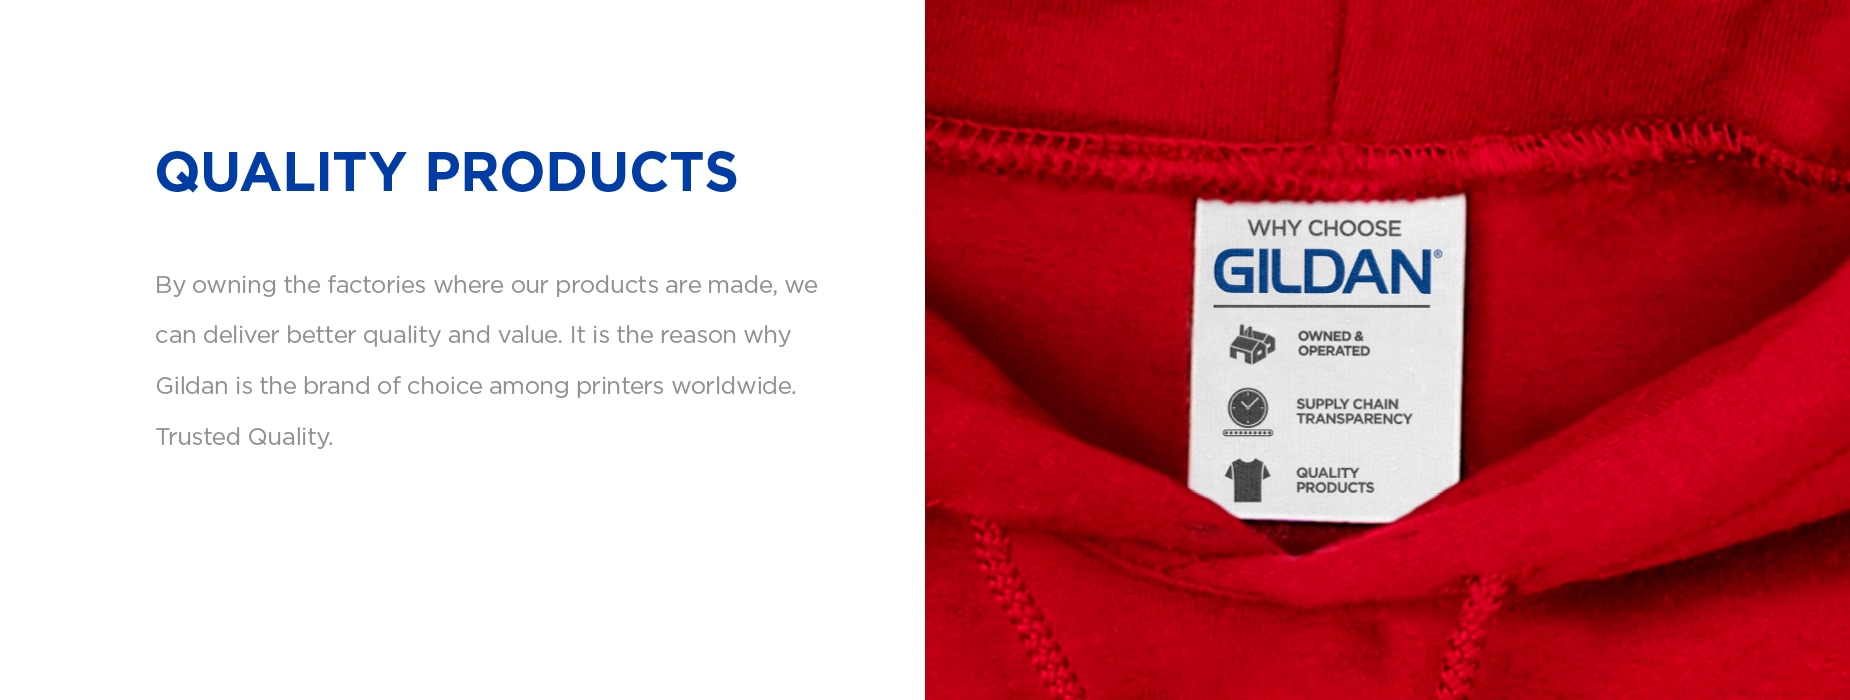 By owning the factories where our products are made, we can deliver better quality and value. | Gildan® USA